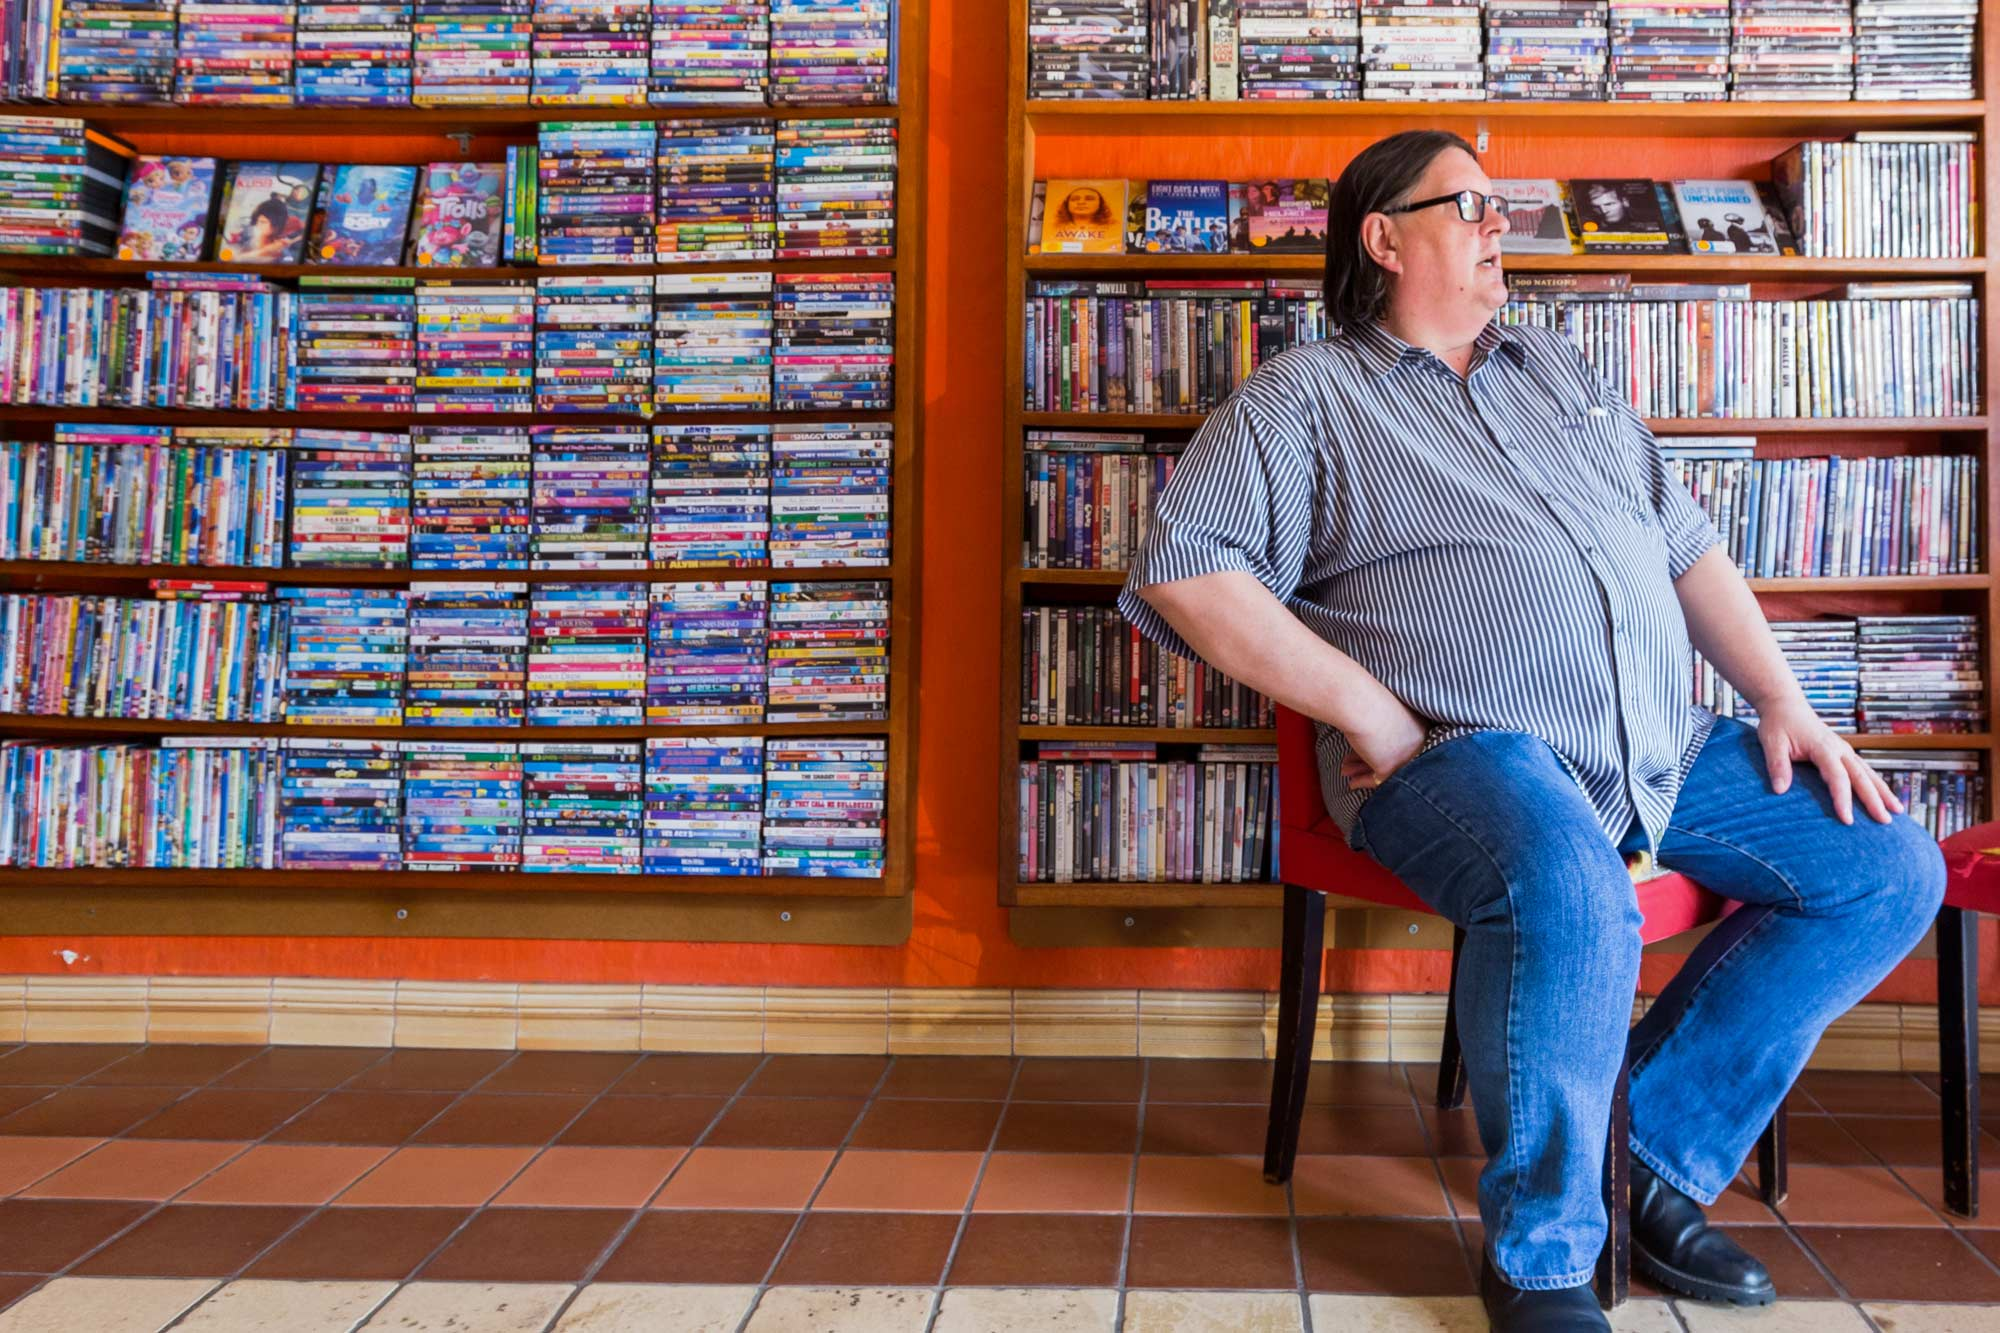 Mason captured this photo in The Majestic, a video store near her house in Johannesburg. Henni Erasmus, pictured, helps customers find the movie they are looking for and discover new films. (Photo by Heather Mason)